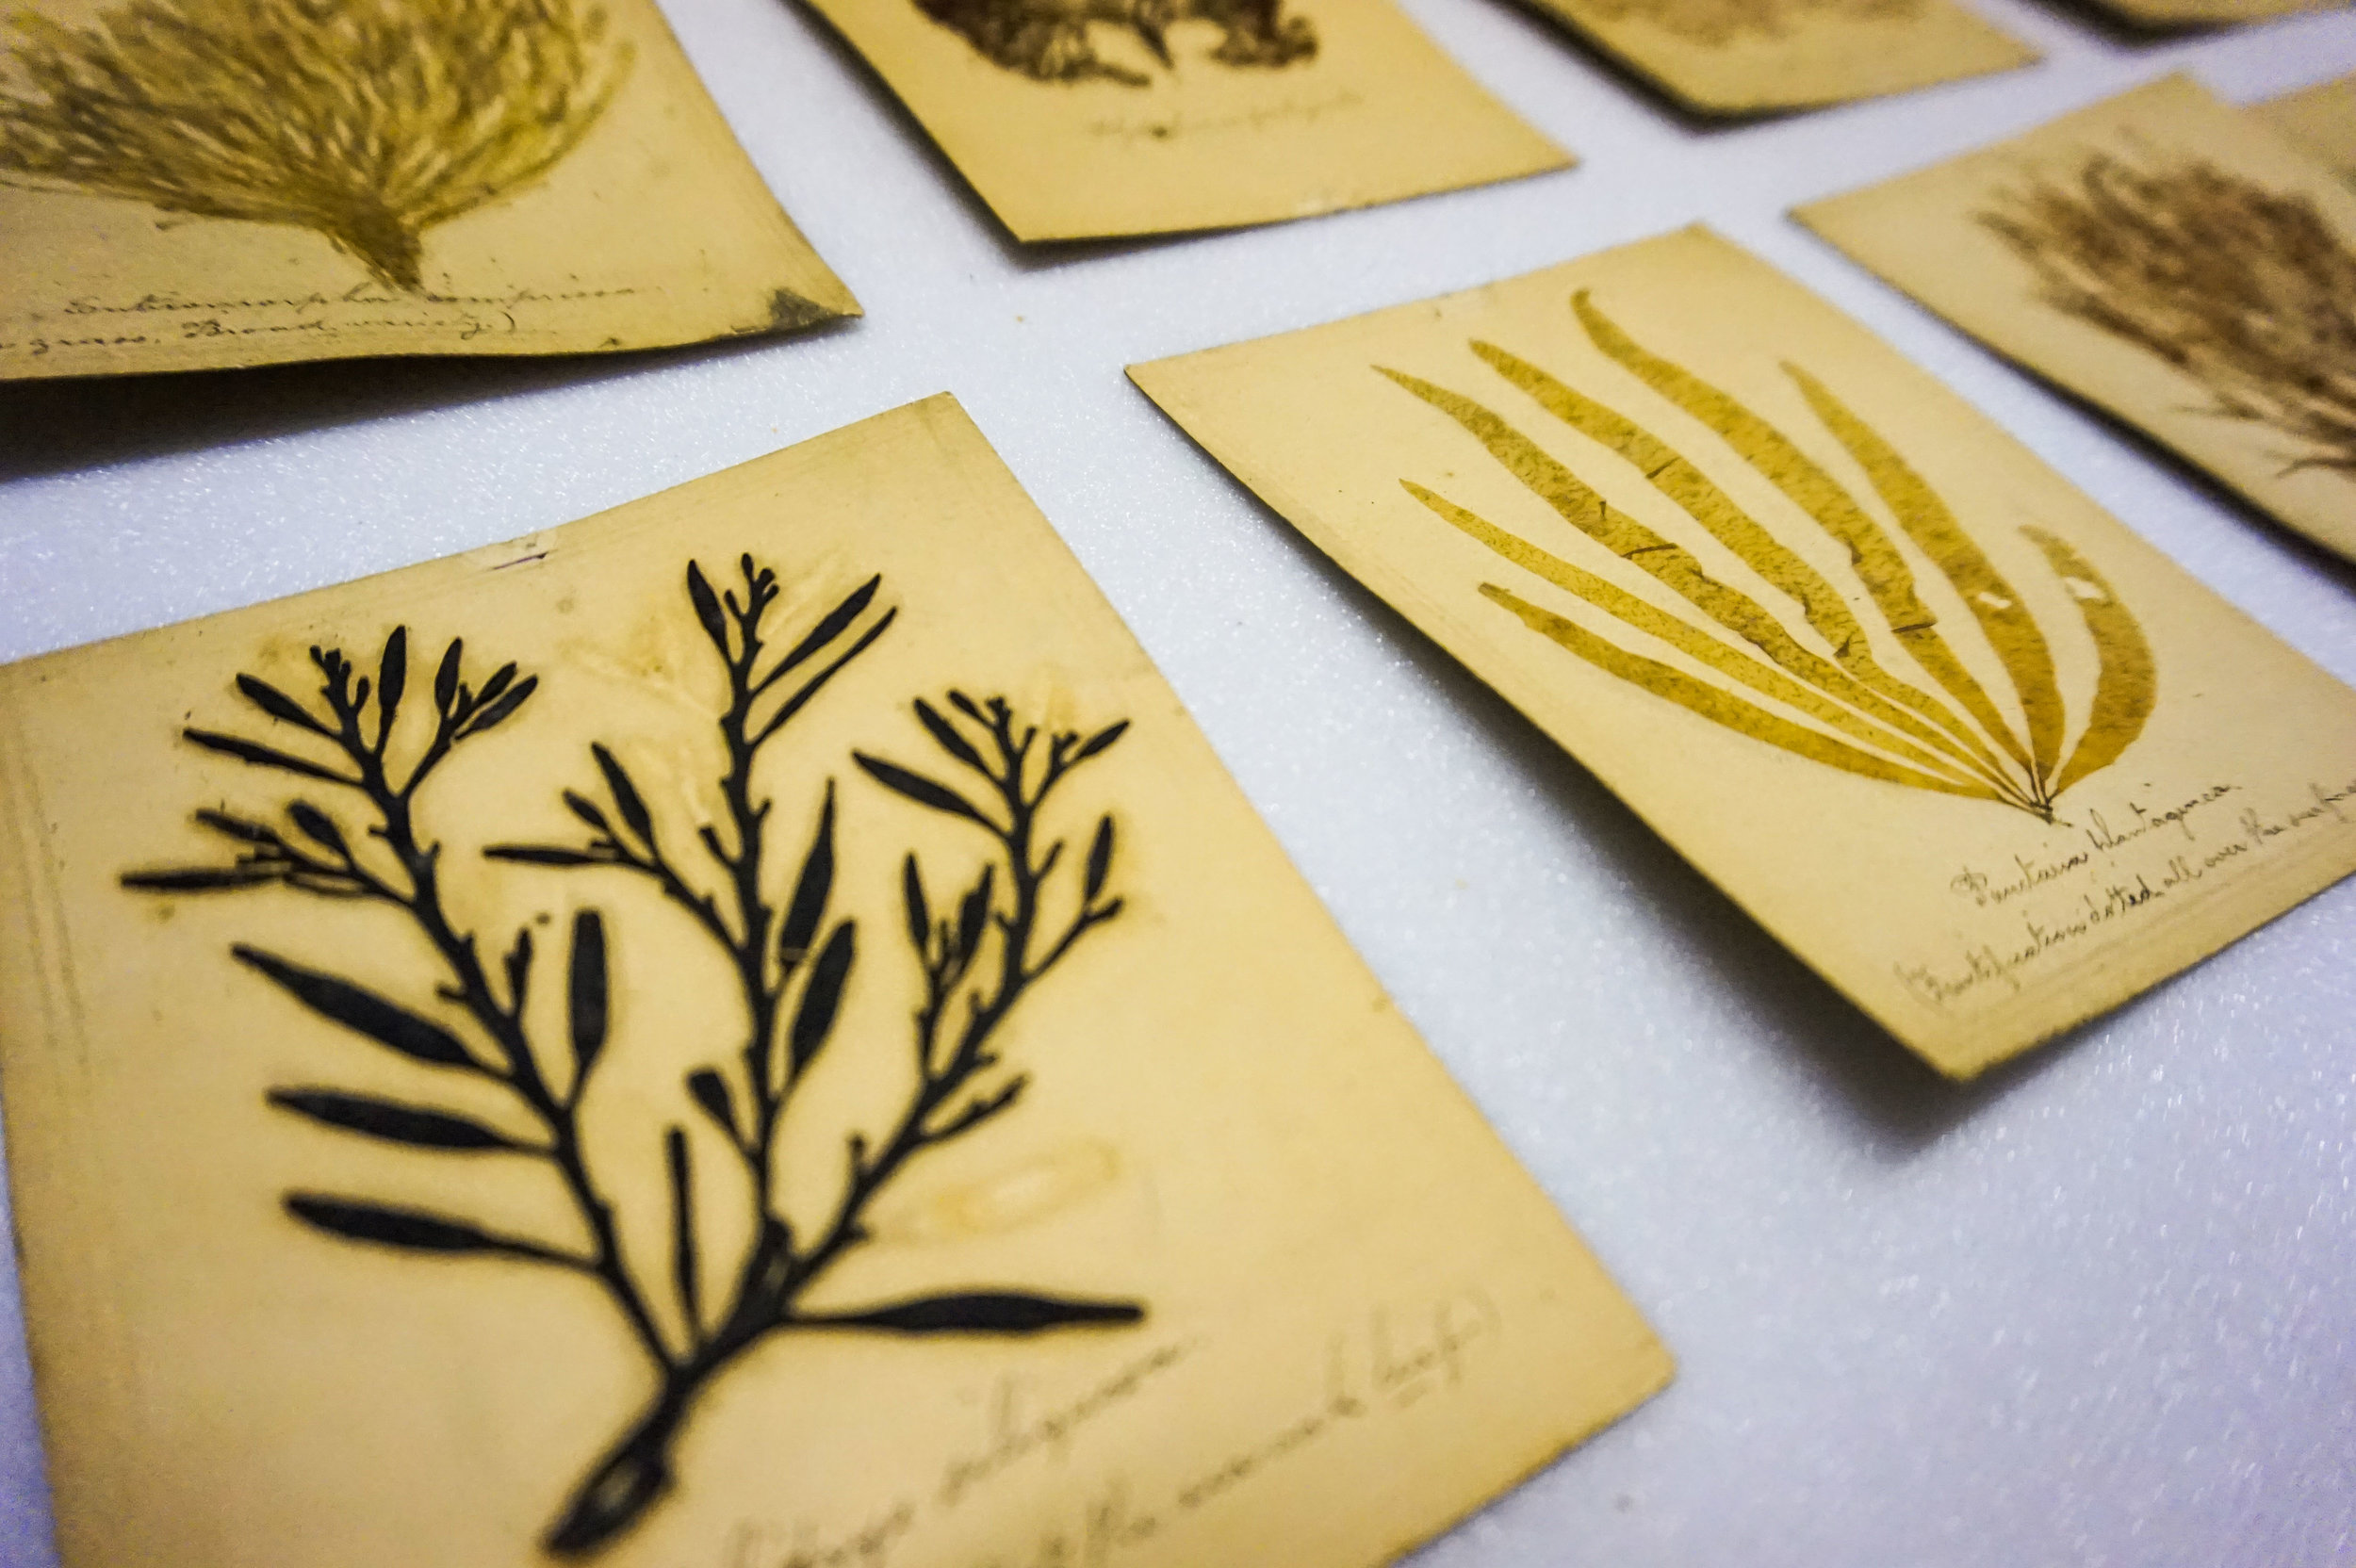 Detail: Pressed seaweed from the Whitaker Museum collection'